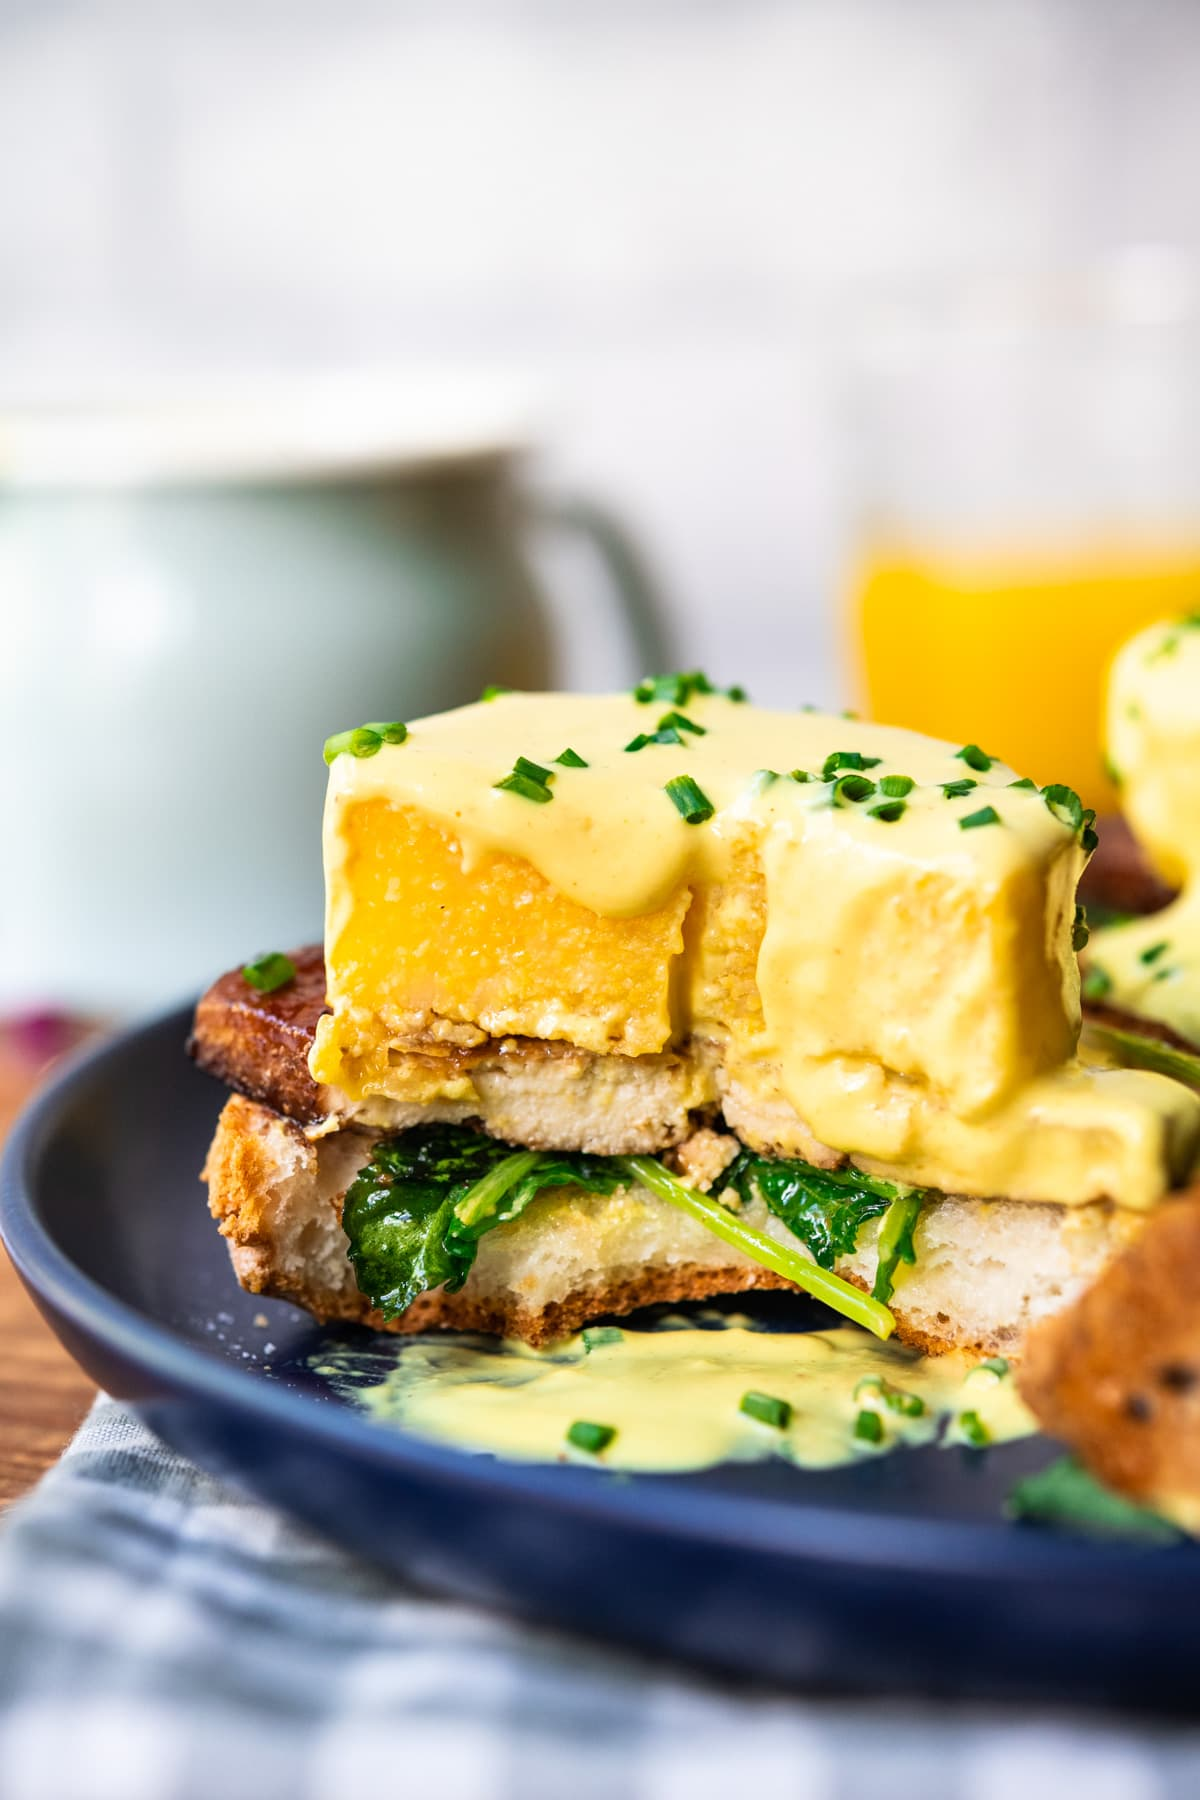 close up side view of cross section of polenta eggs benedict with vegan hollandaise sauce.